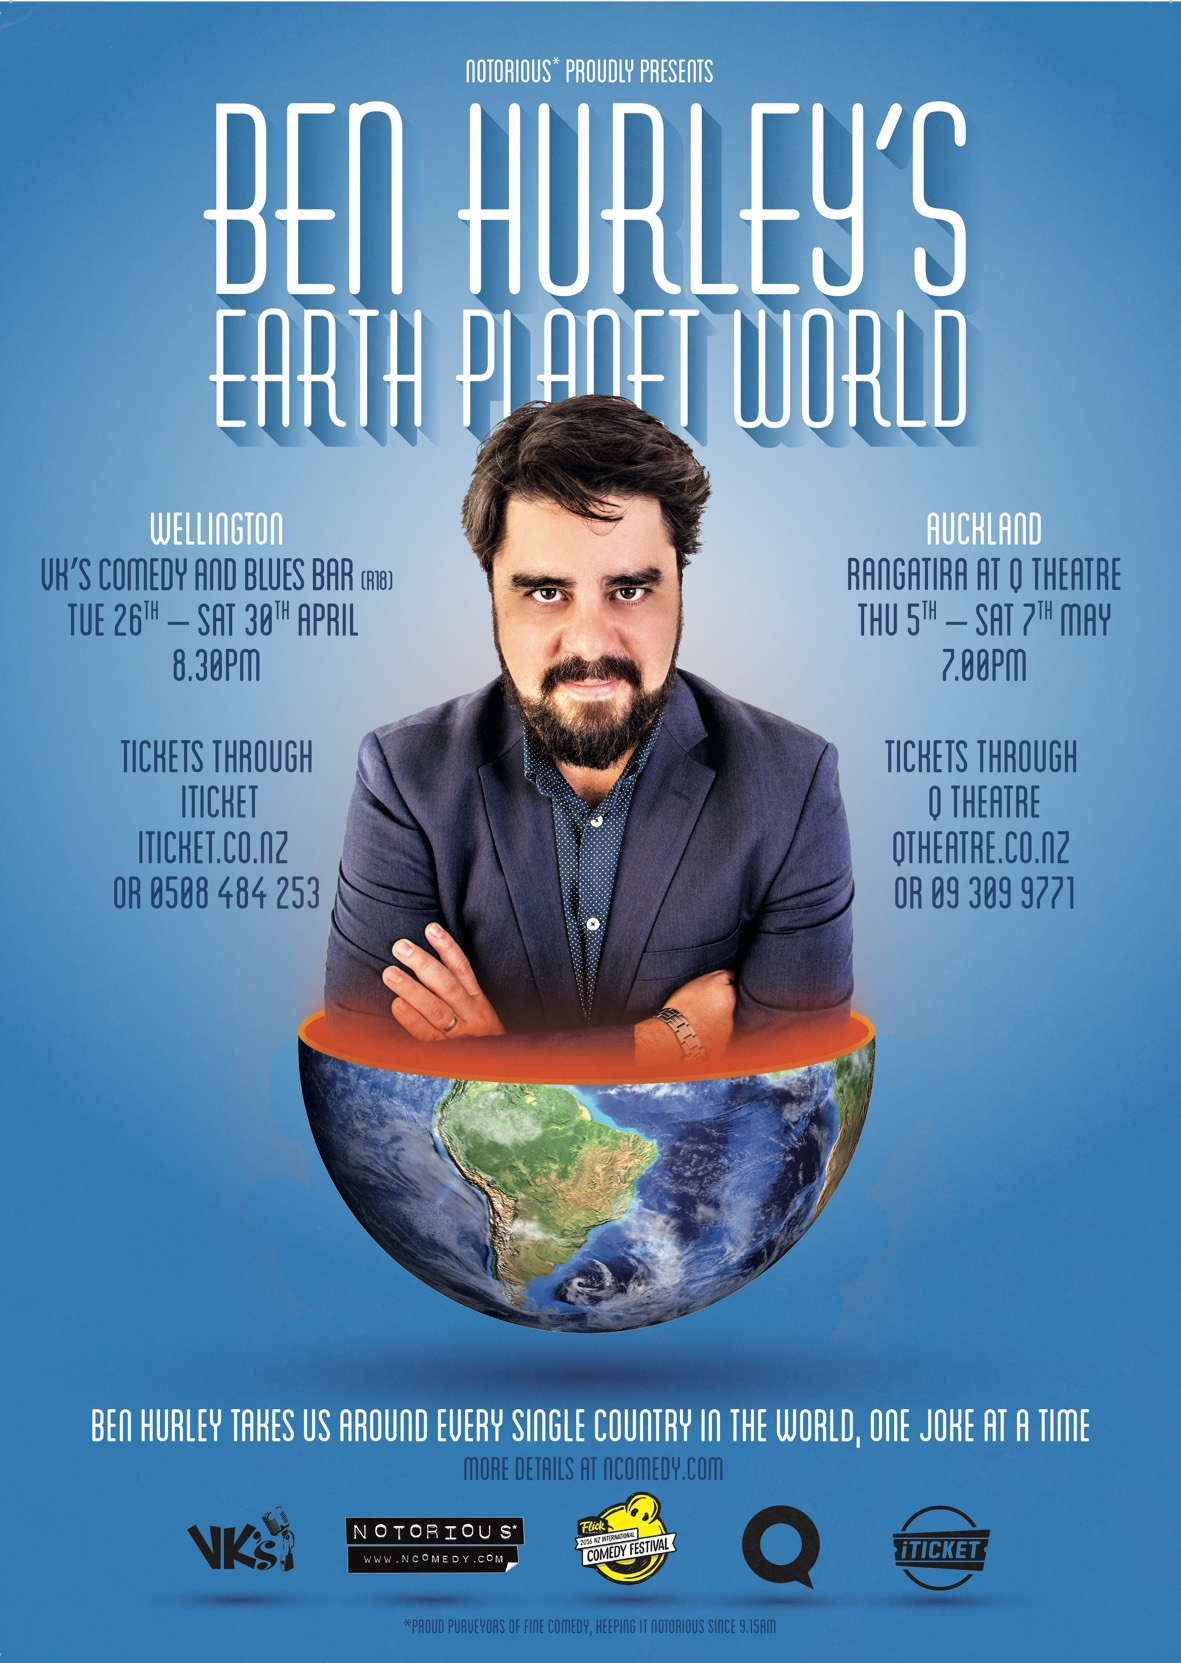 45 Ben Hurley Earth Planet World 2016